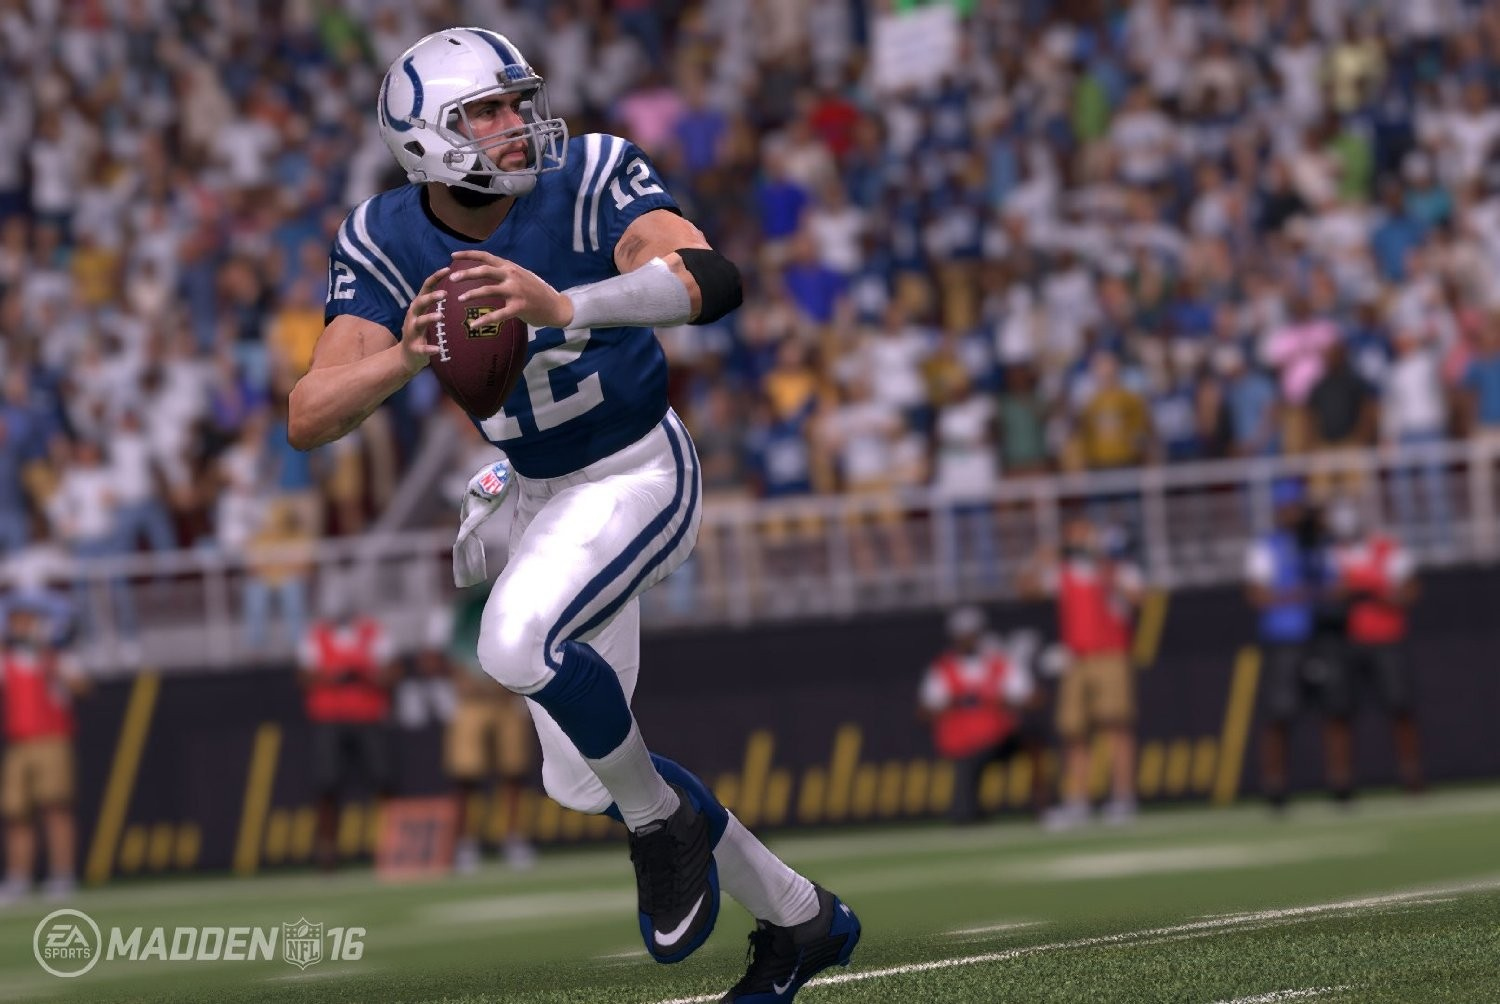 Madden 16 Pre Order Bonuses Focus On Ultimate Team Stick